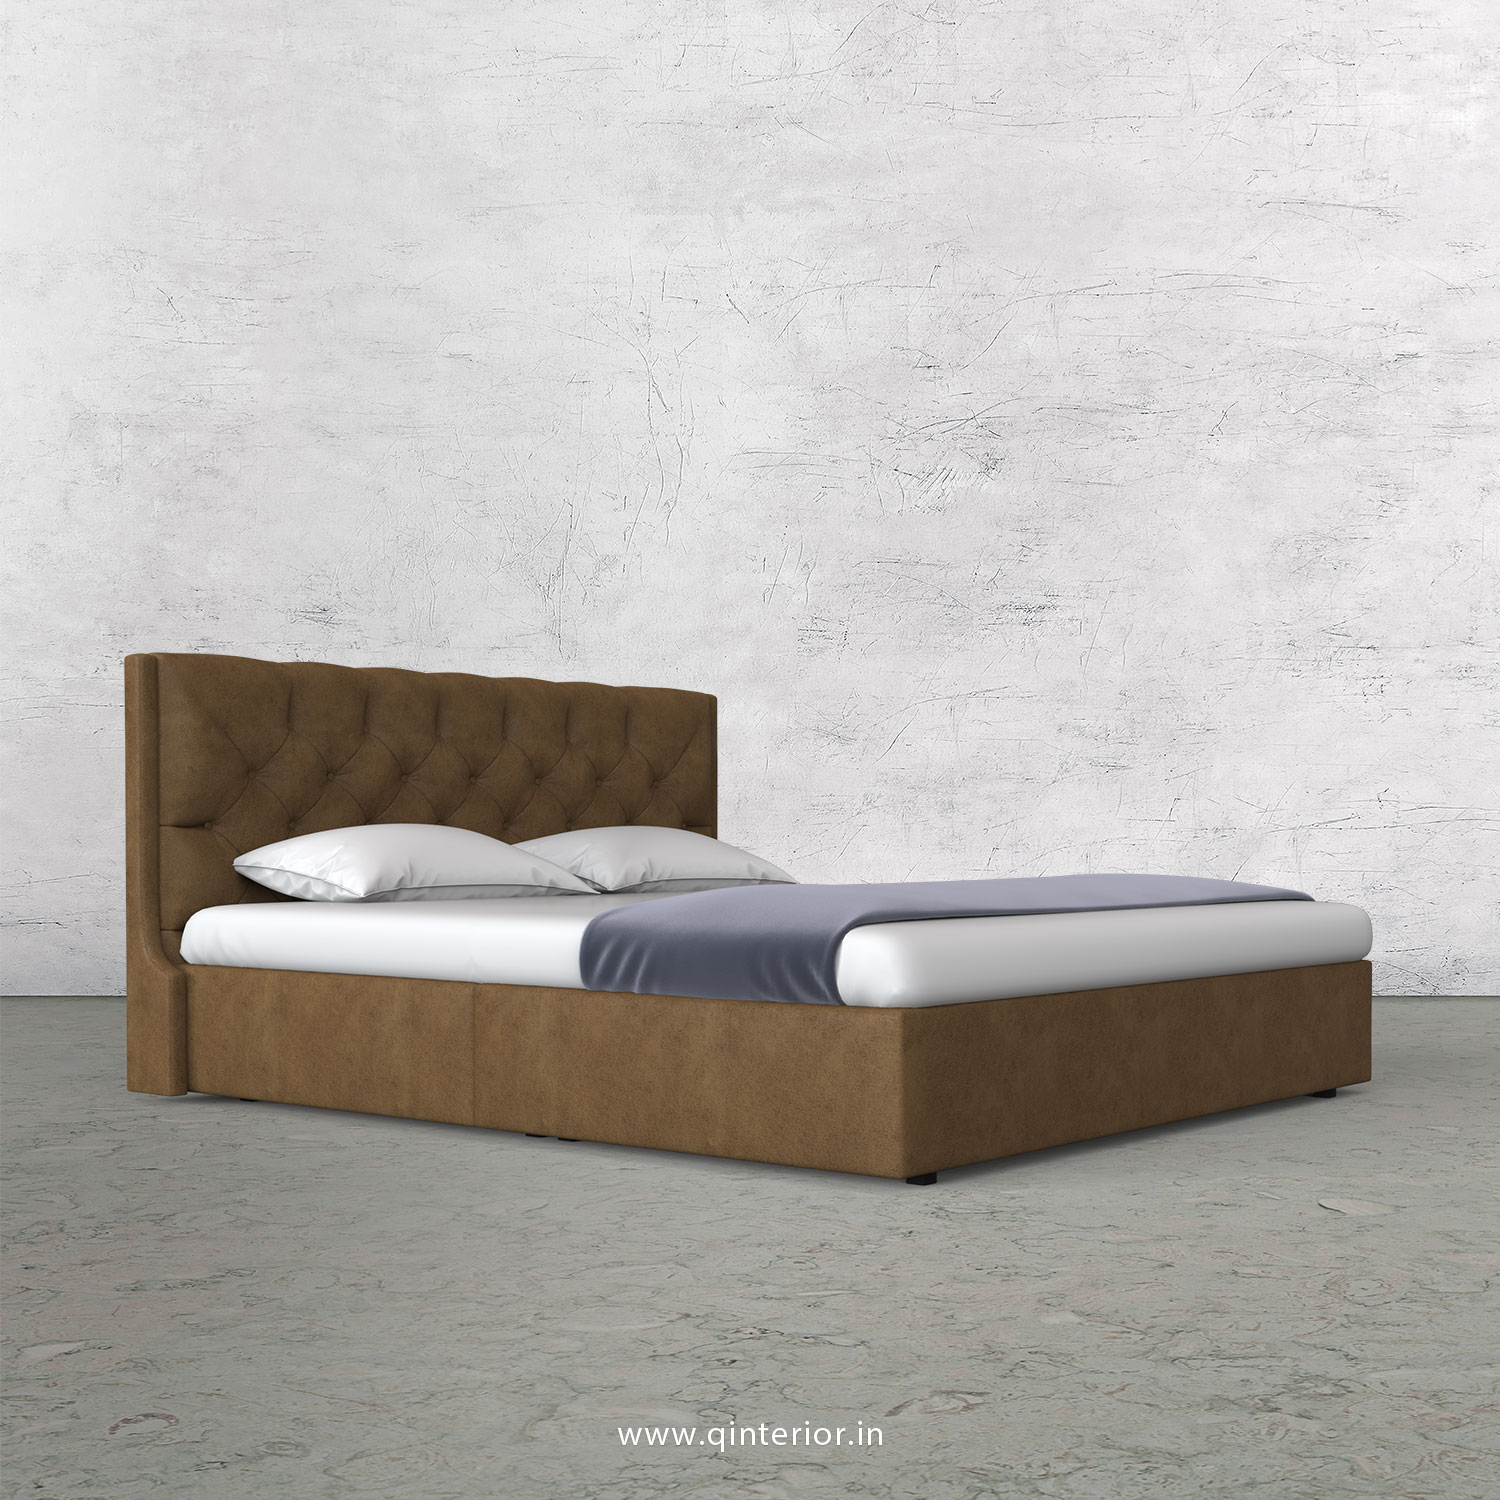 Scorpius Queen Bed in Fab Leather Fabric - QBD009 FL02